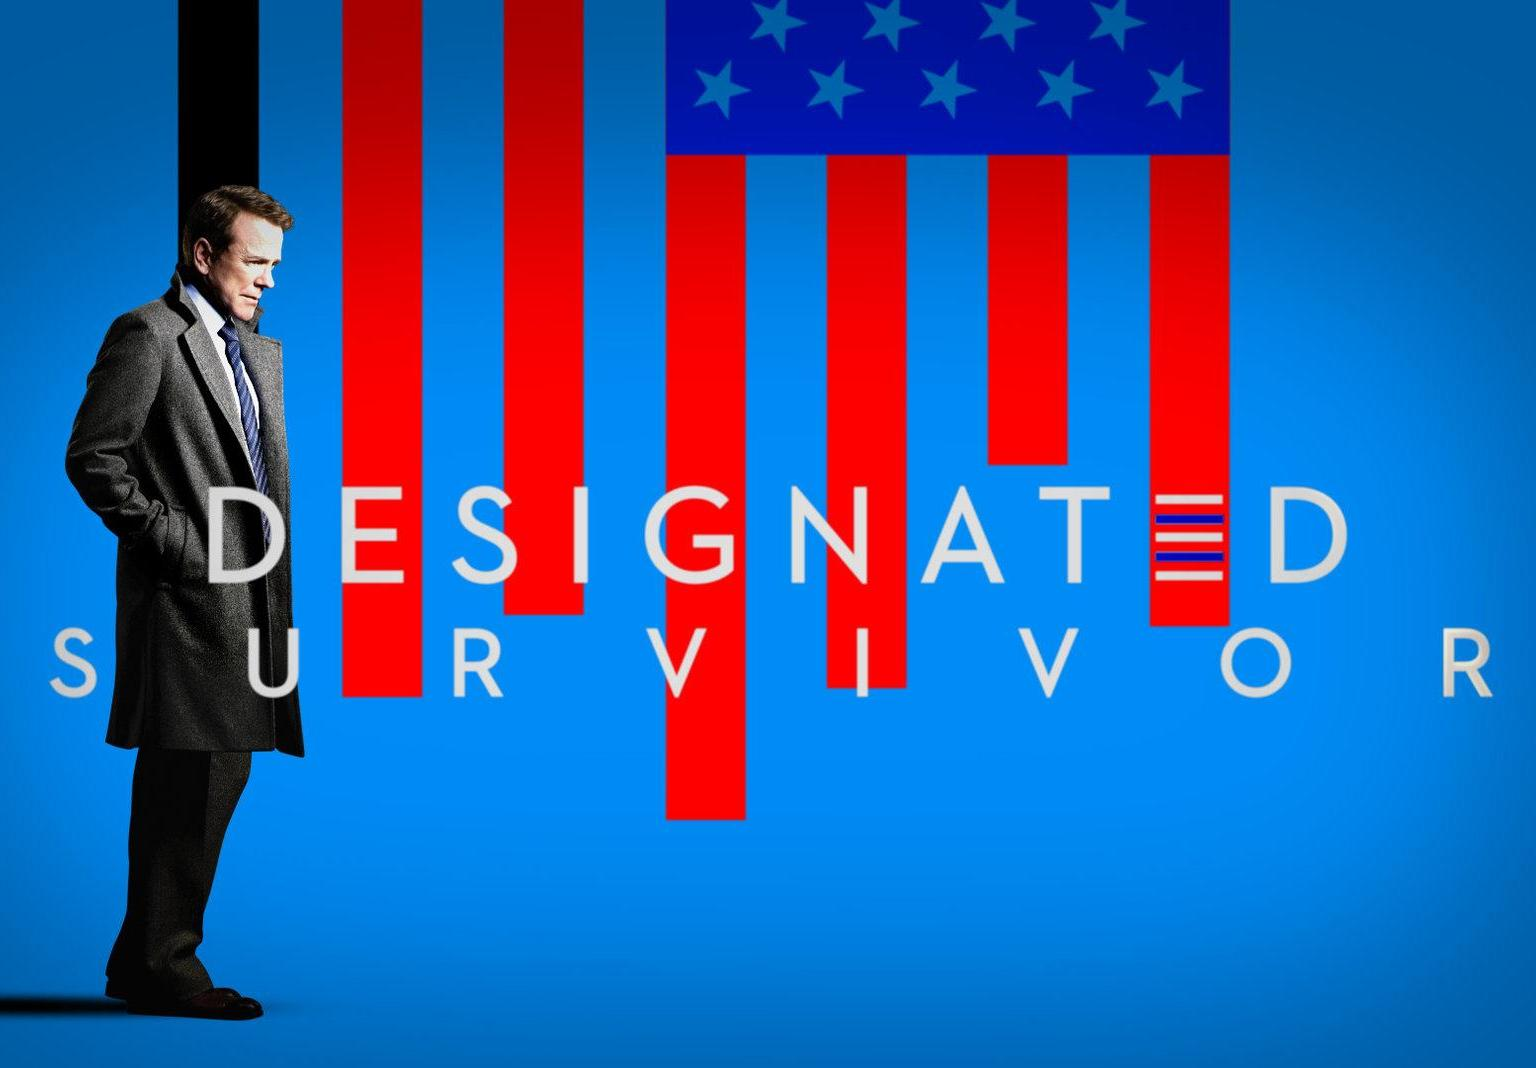 Designated Survivor TV Series 2016 Review - Newslibre